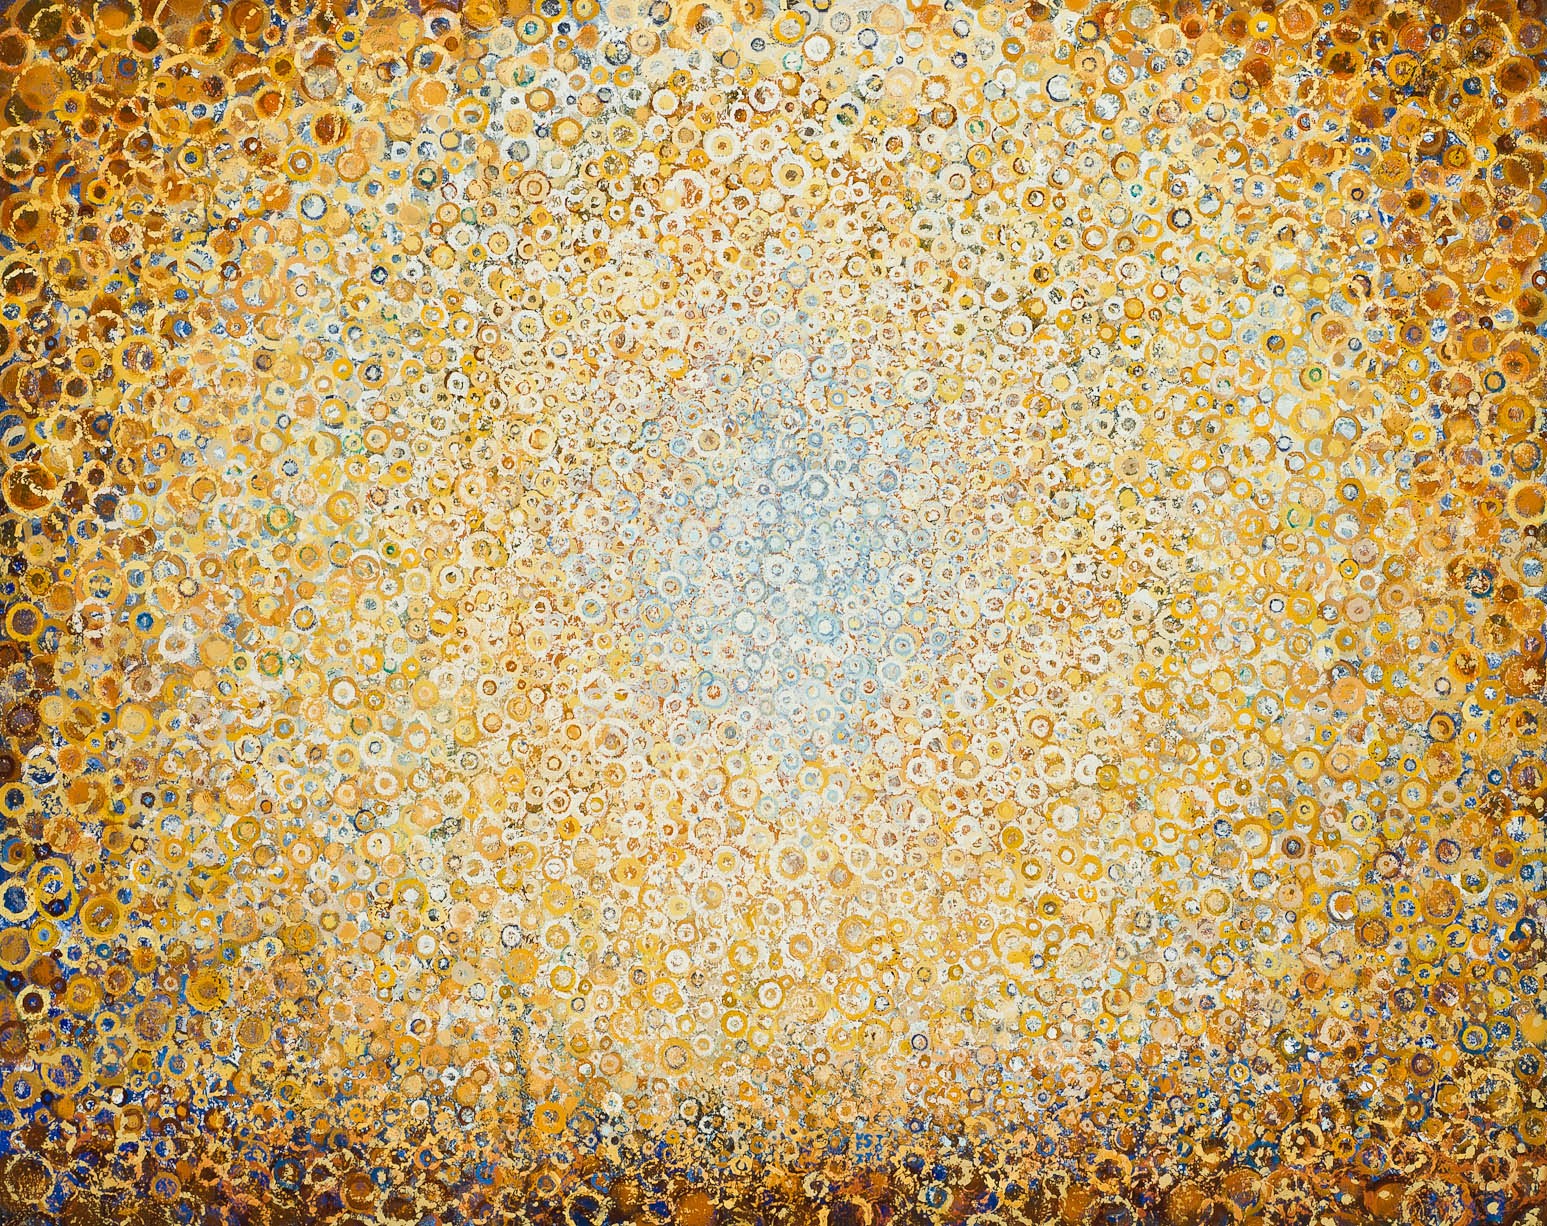 """Morir Soñando"" by Randall Stoltzfus, 2013, acrylic dispersion and oil on canvas, 48 x 60 inches"